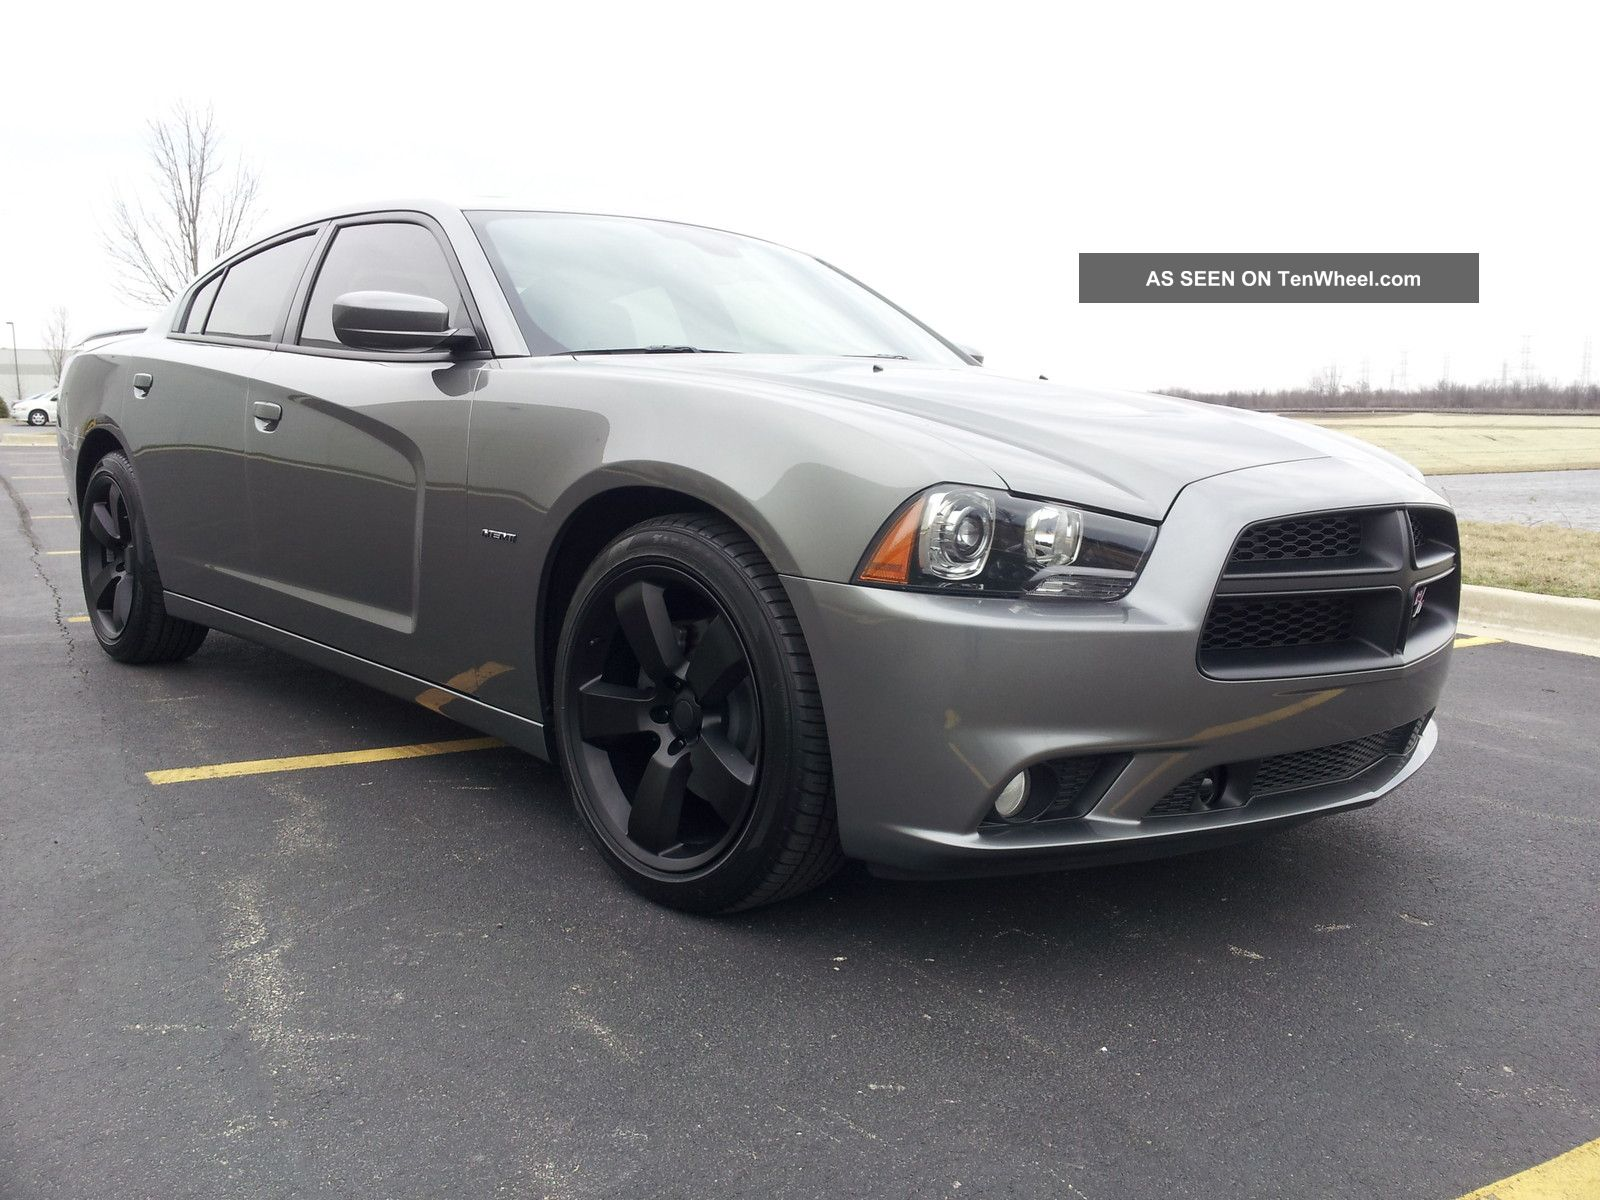 2012 dodge charger r t max rt hemi. Black Bedroom Furniture Sets. Home Design Ideas